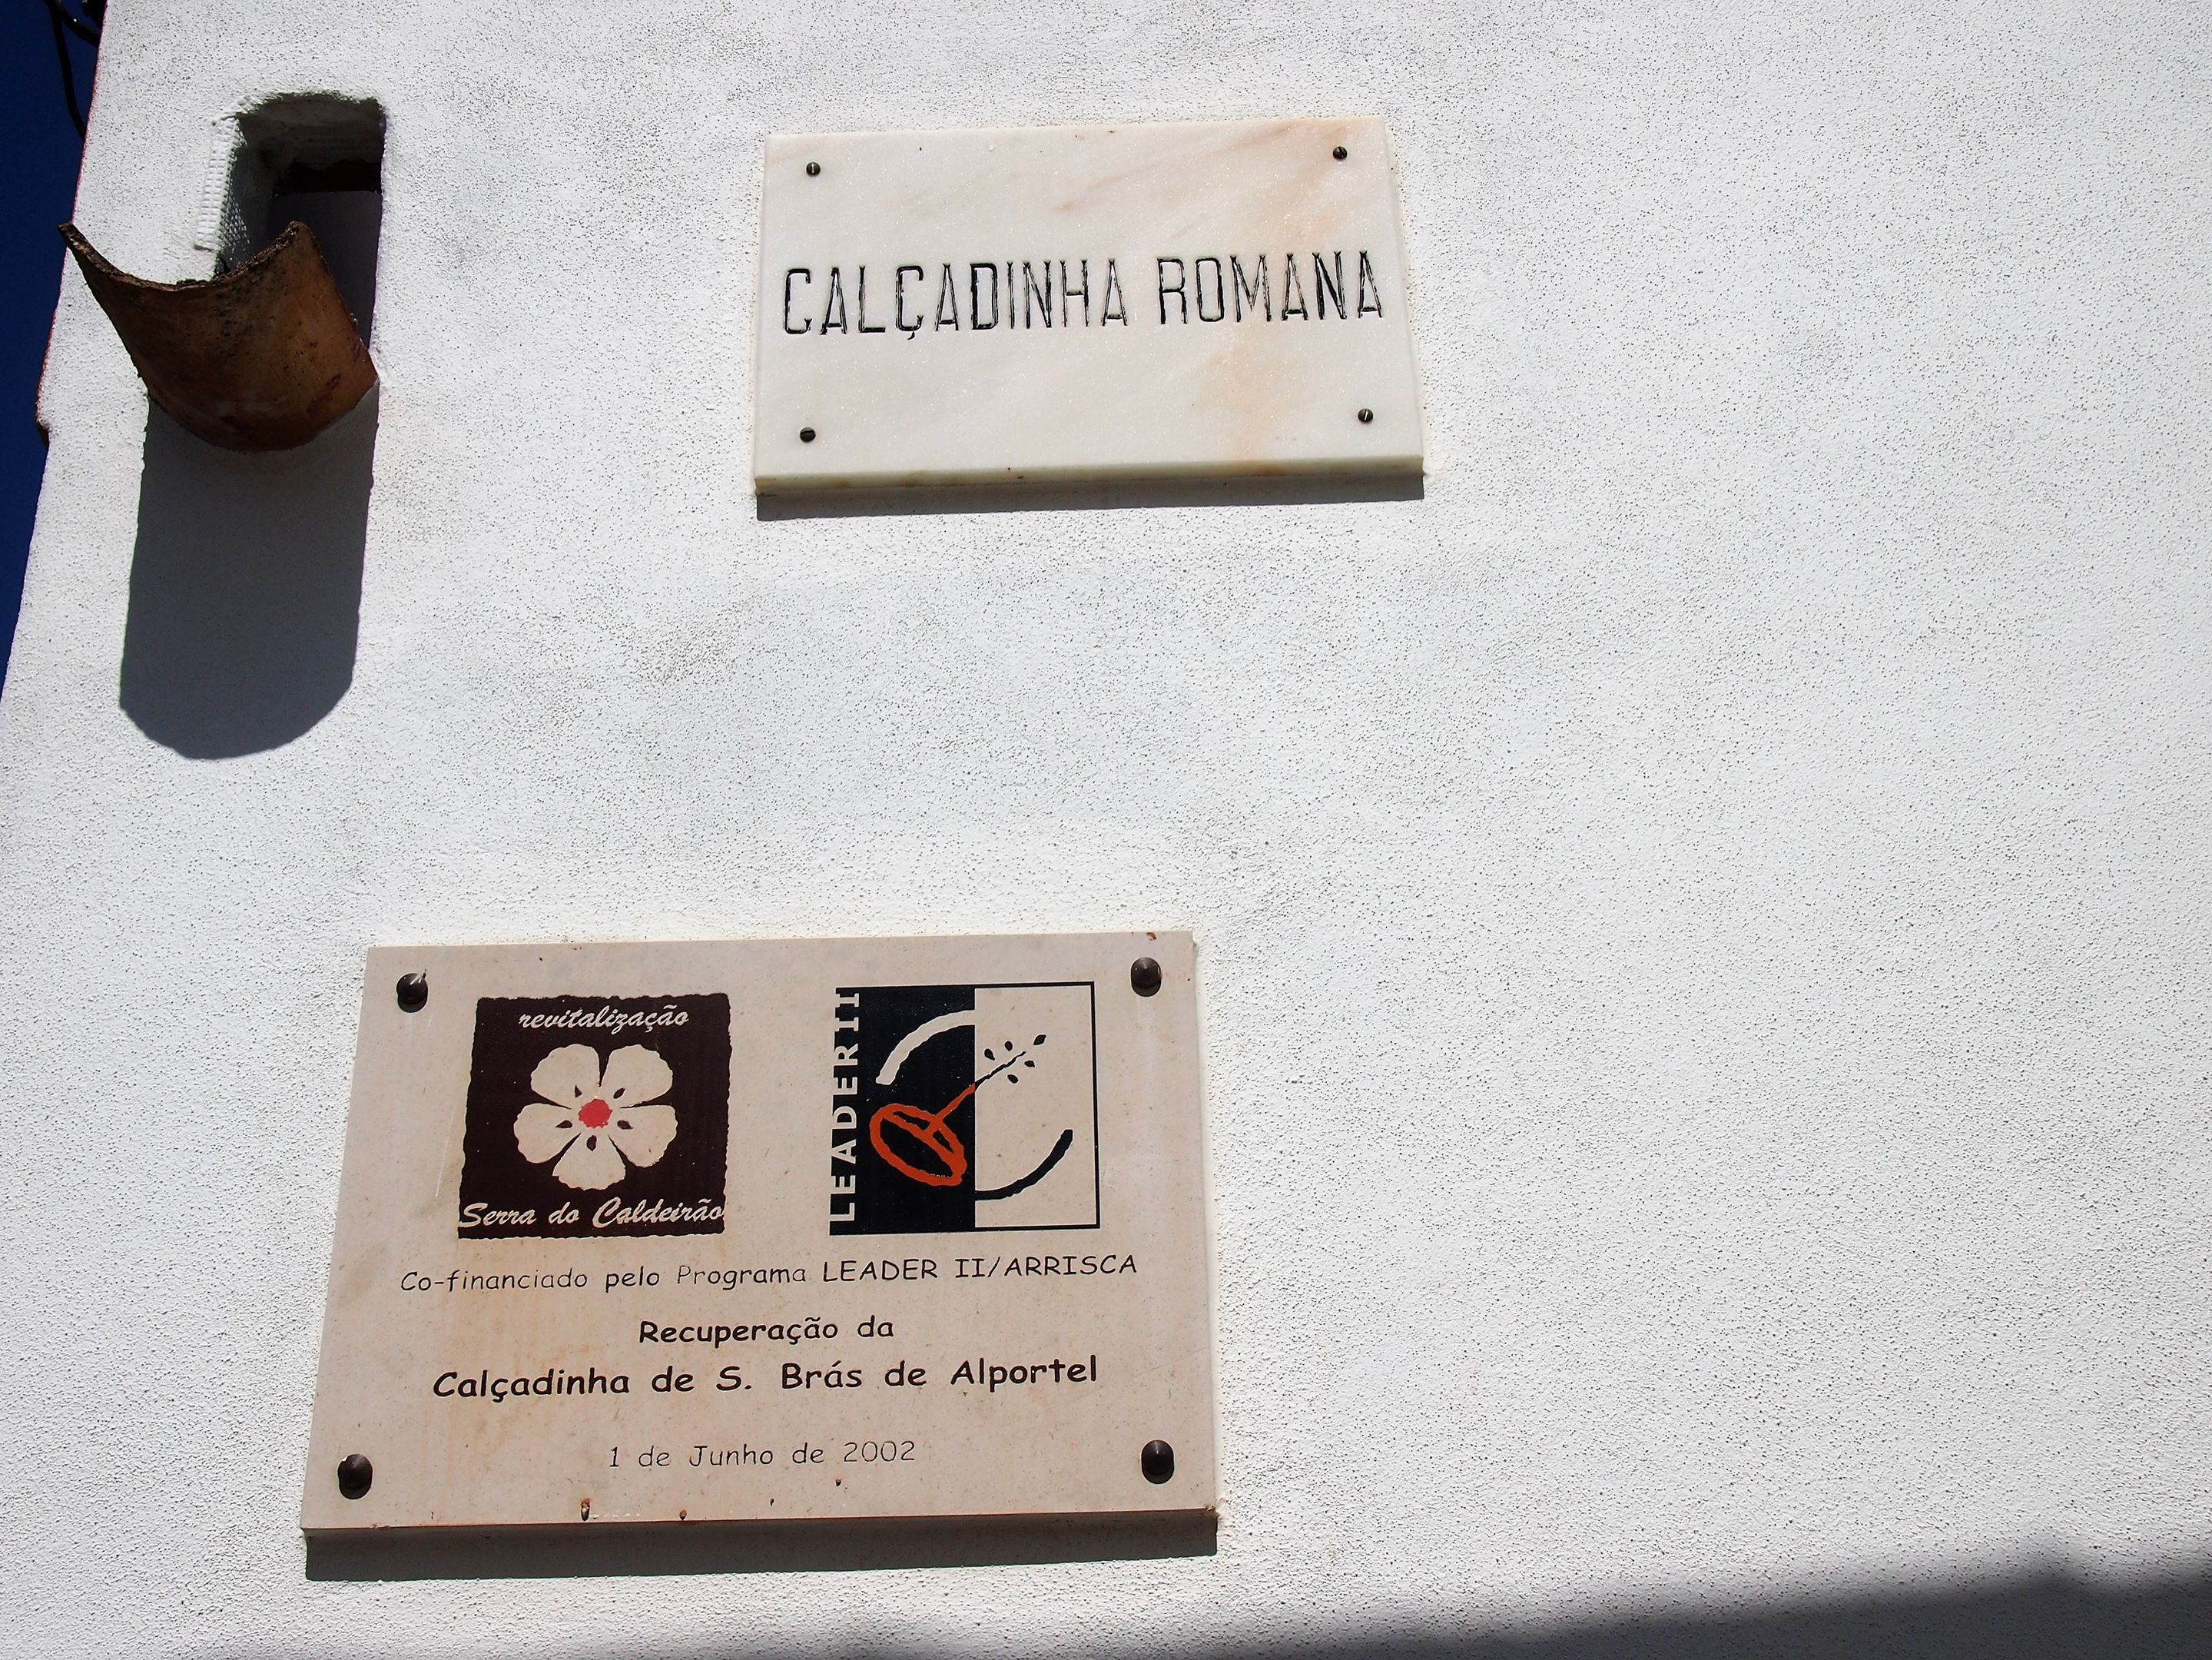 The Calçadinha Romana, a signpost showing the Roman road close to the main church, São Brás de Alportel